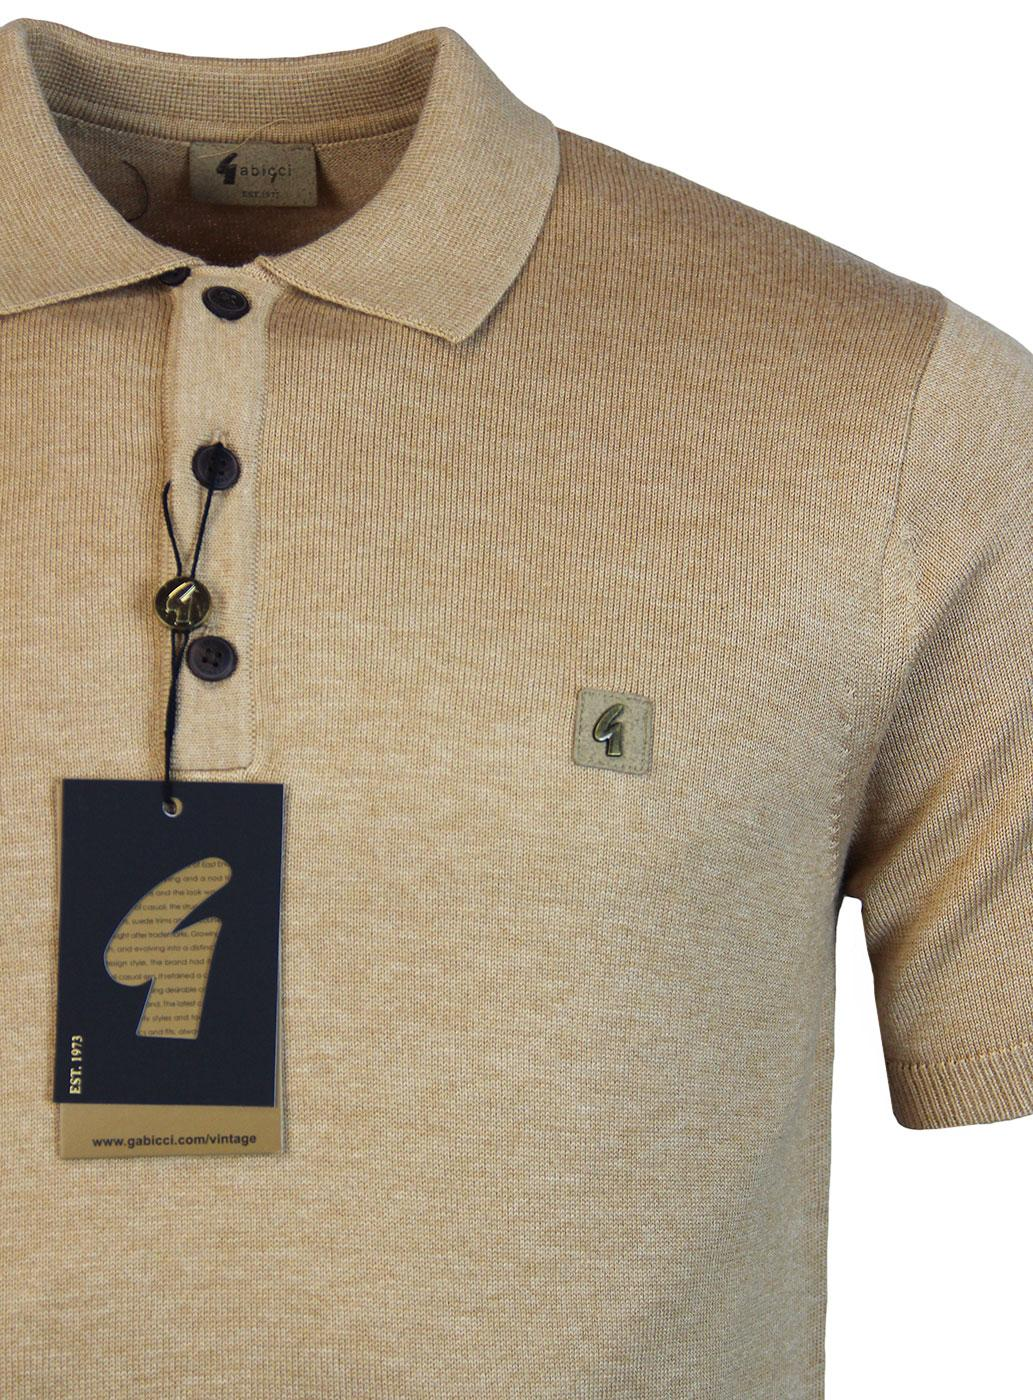 fd12875b2 GABICCI VINTAGE Retro 1960s Mod Fine Knit Polo shirt in Honey